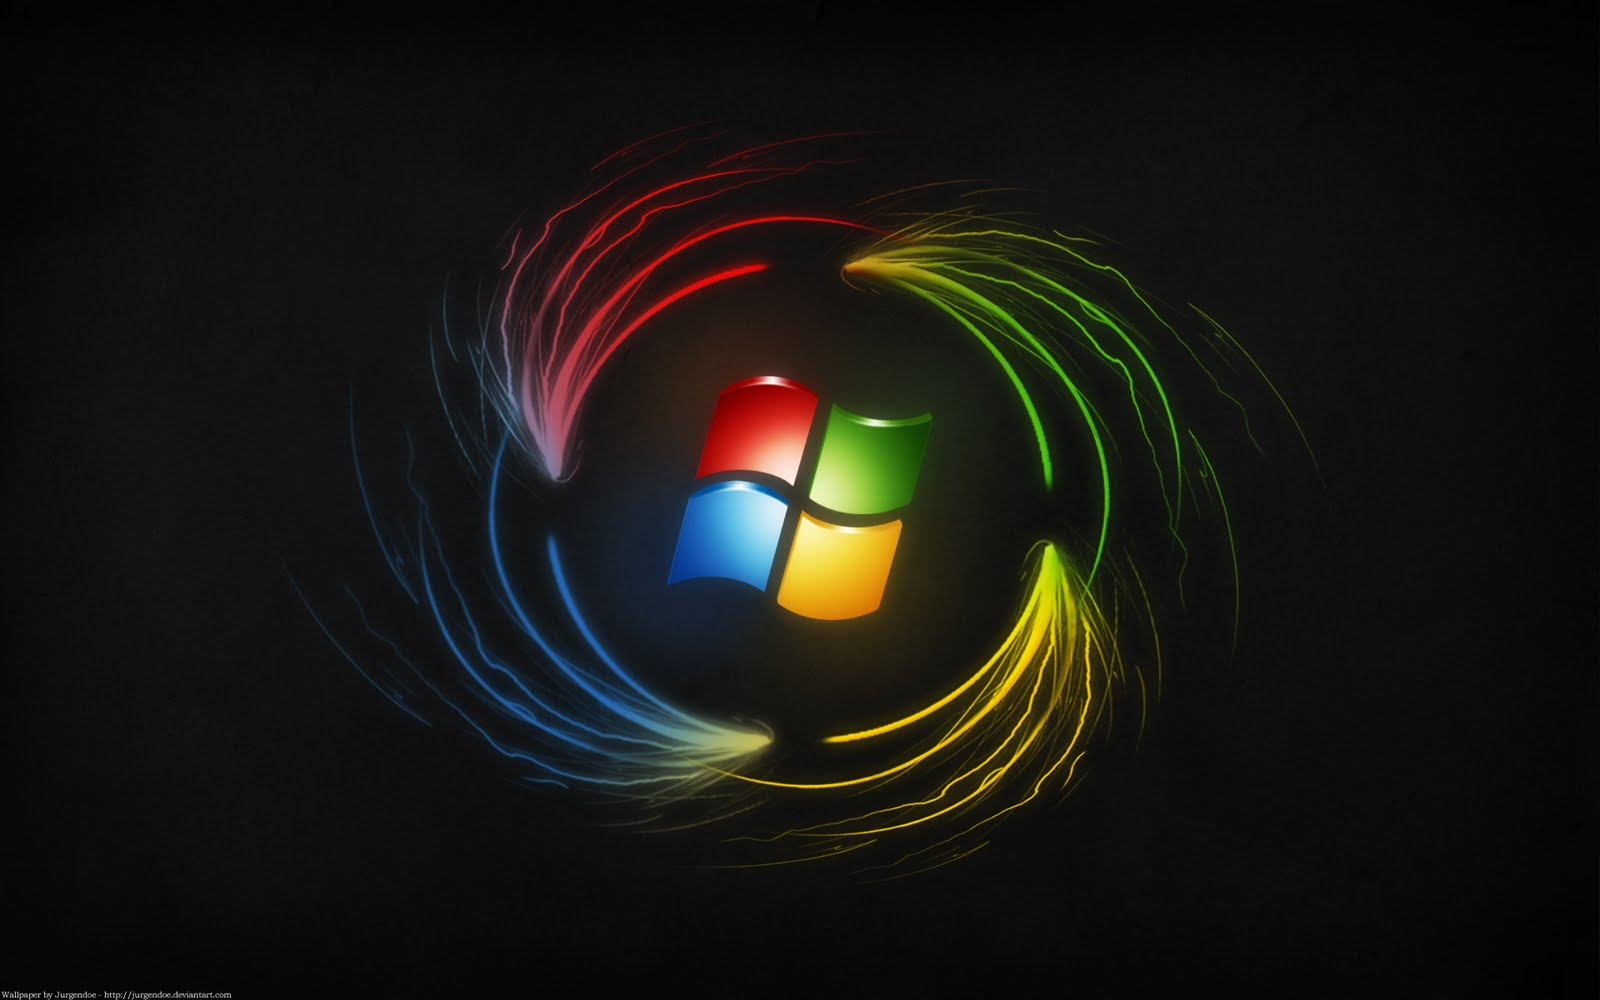 Windows 7 HD Wallpapers 1920x1080 Group (92 )